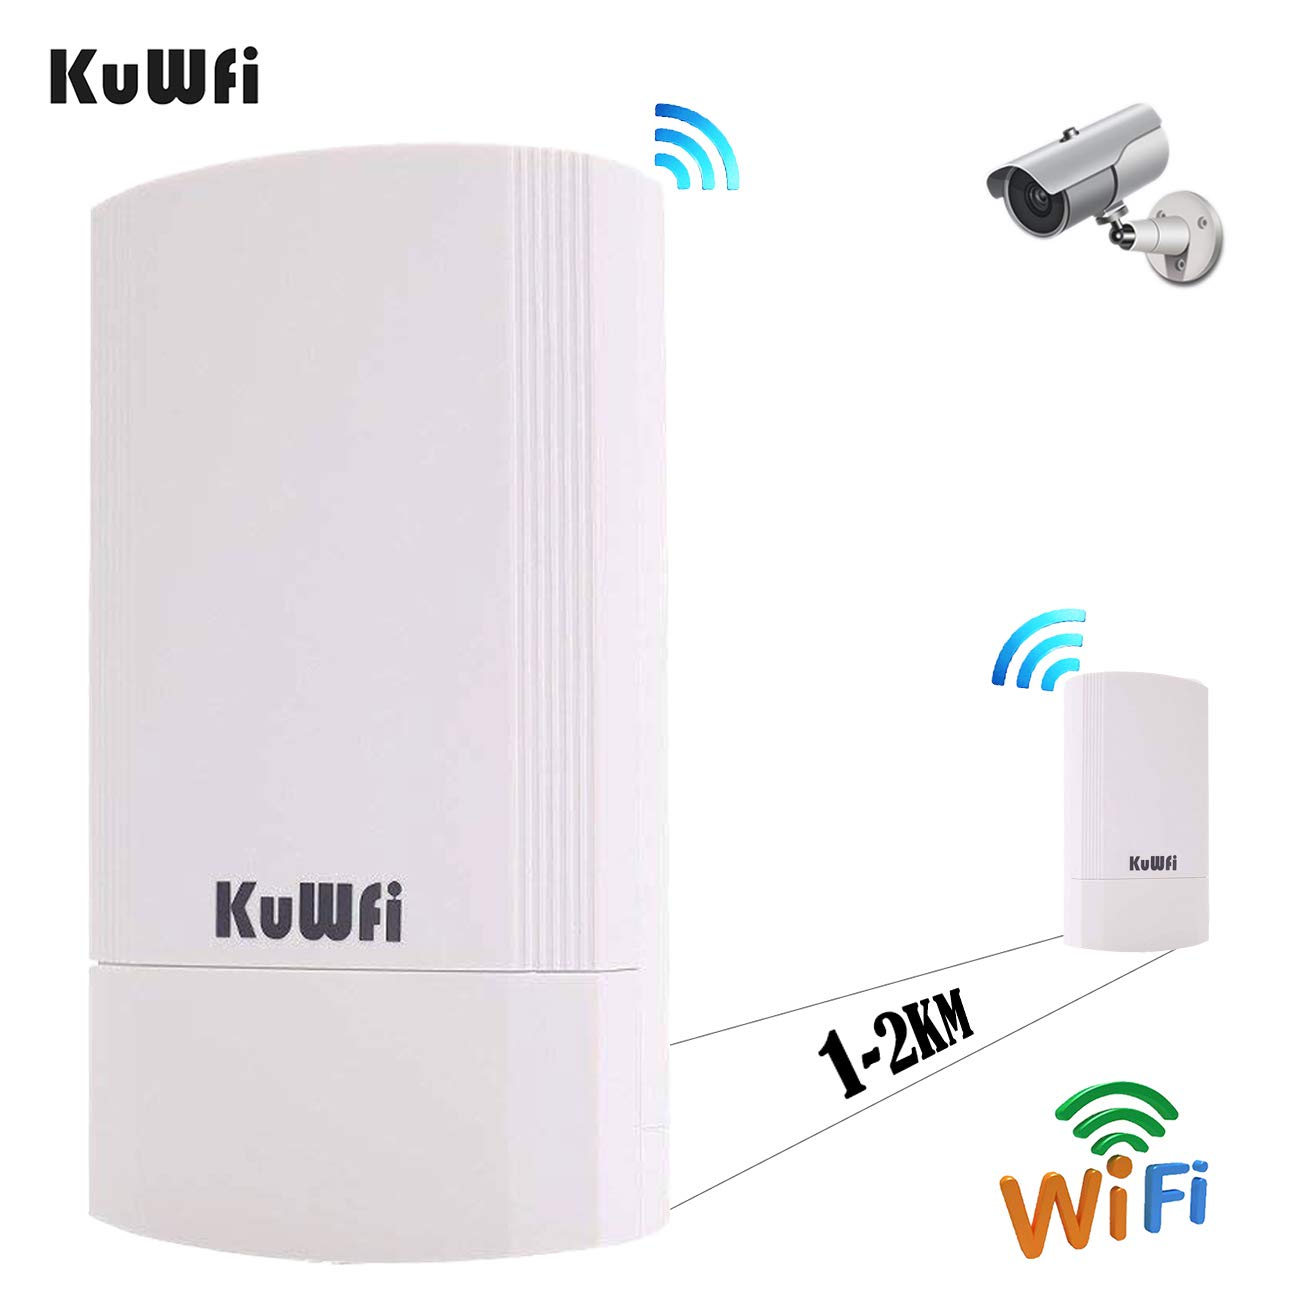 KuWFi Outdoor AP, 2-Pack 450Mbps Long Range Wireless CPE Bridge Point to Point Indoor&Outdoor CPE Kit Support 1-2KM 5.8G Anti-Interference for PTP/PTMP (Pre-Program WDS) by KuWFi